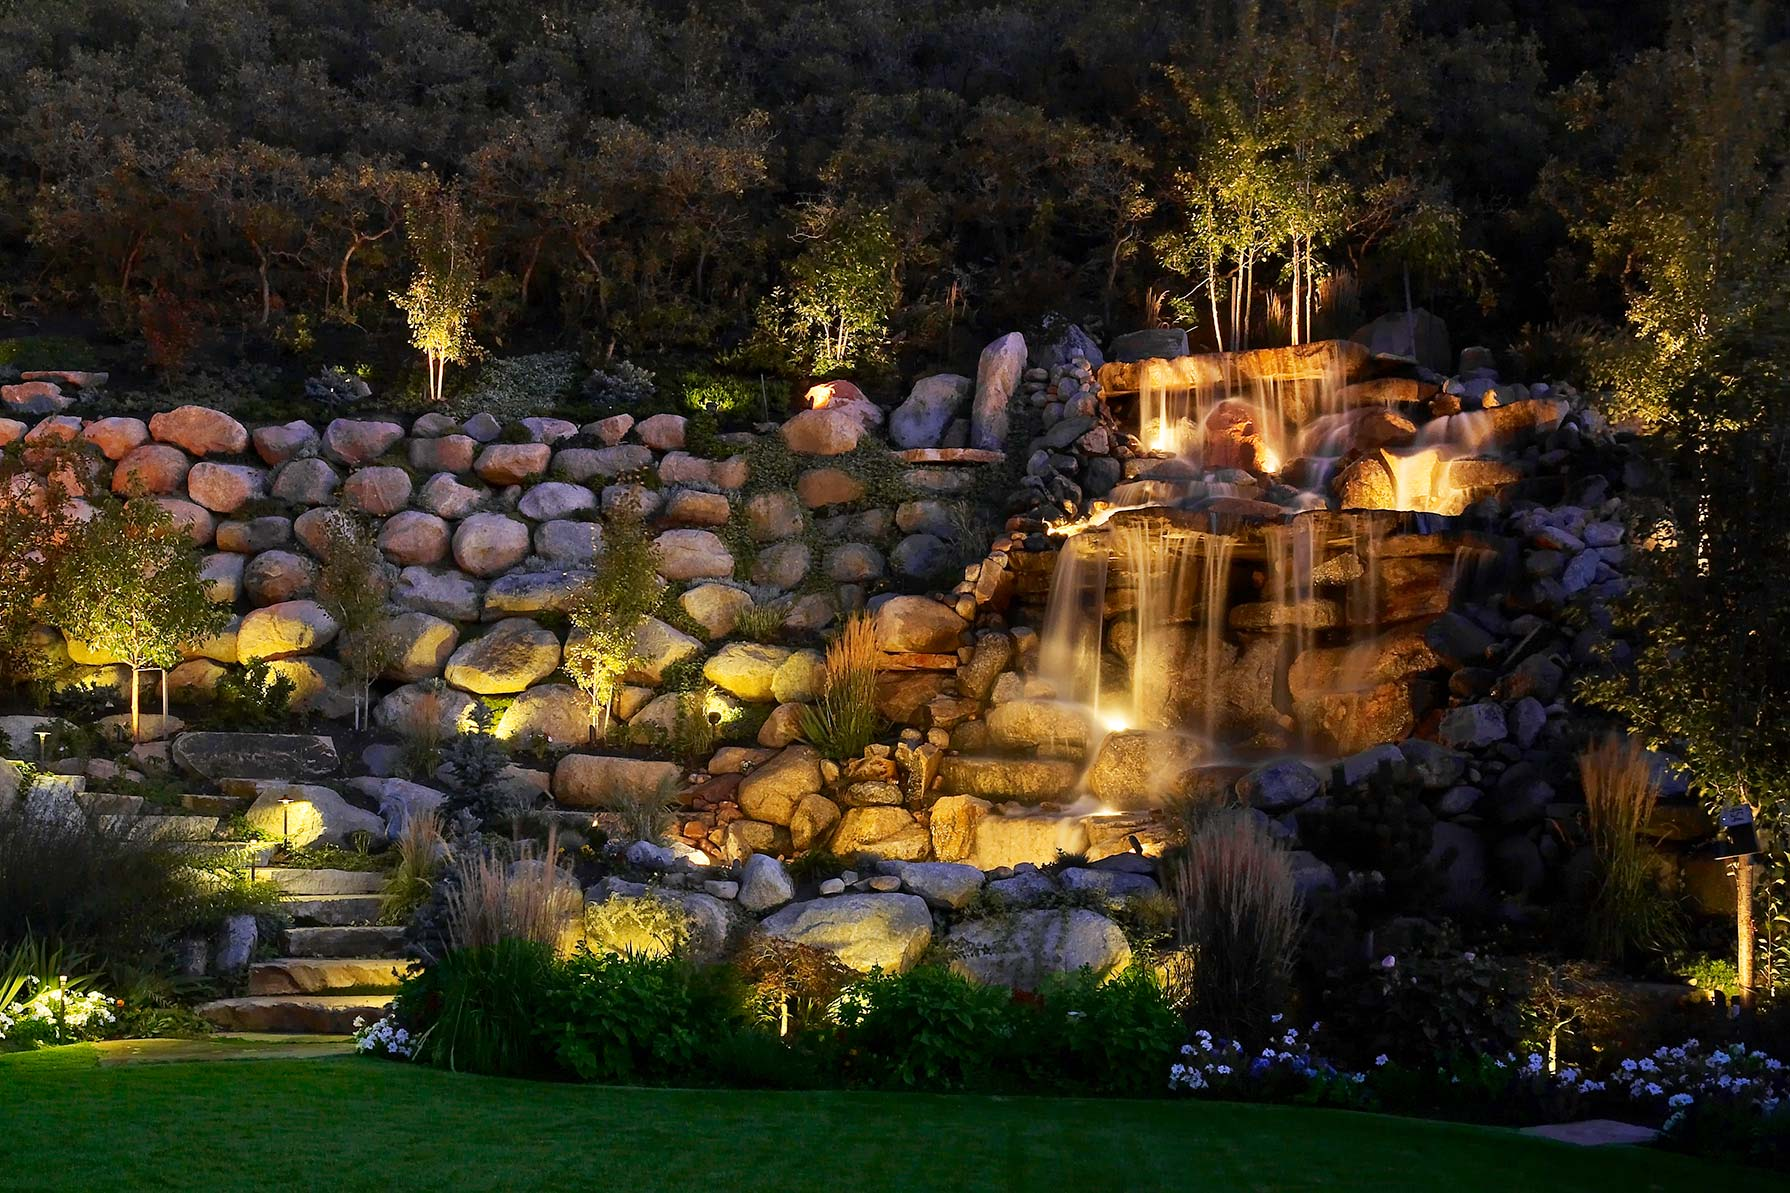 ... Water Feature Pond And Pool Lighting Ideas Pictures For Garden Lights ... & Outdoor Pond Lights - Outdoor Lighting Ideas